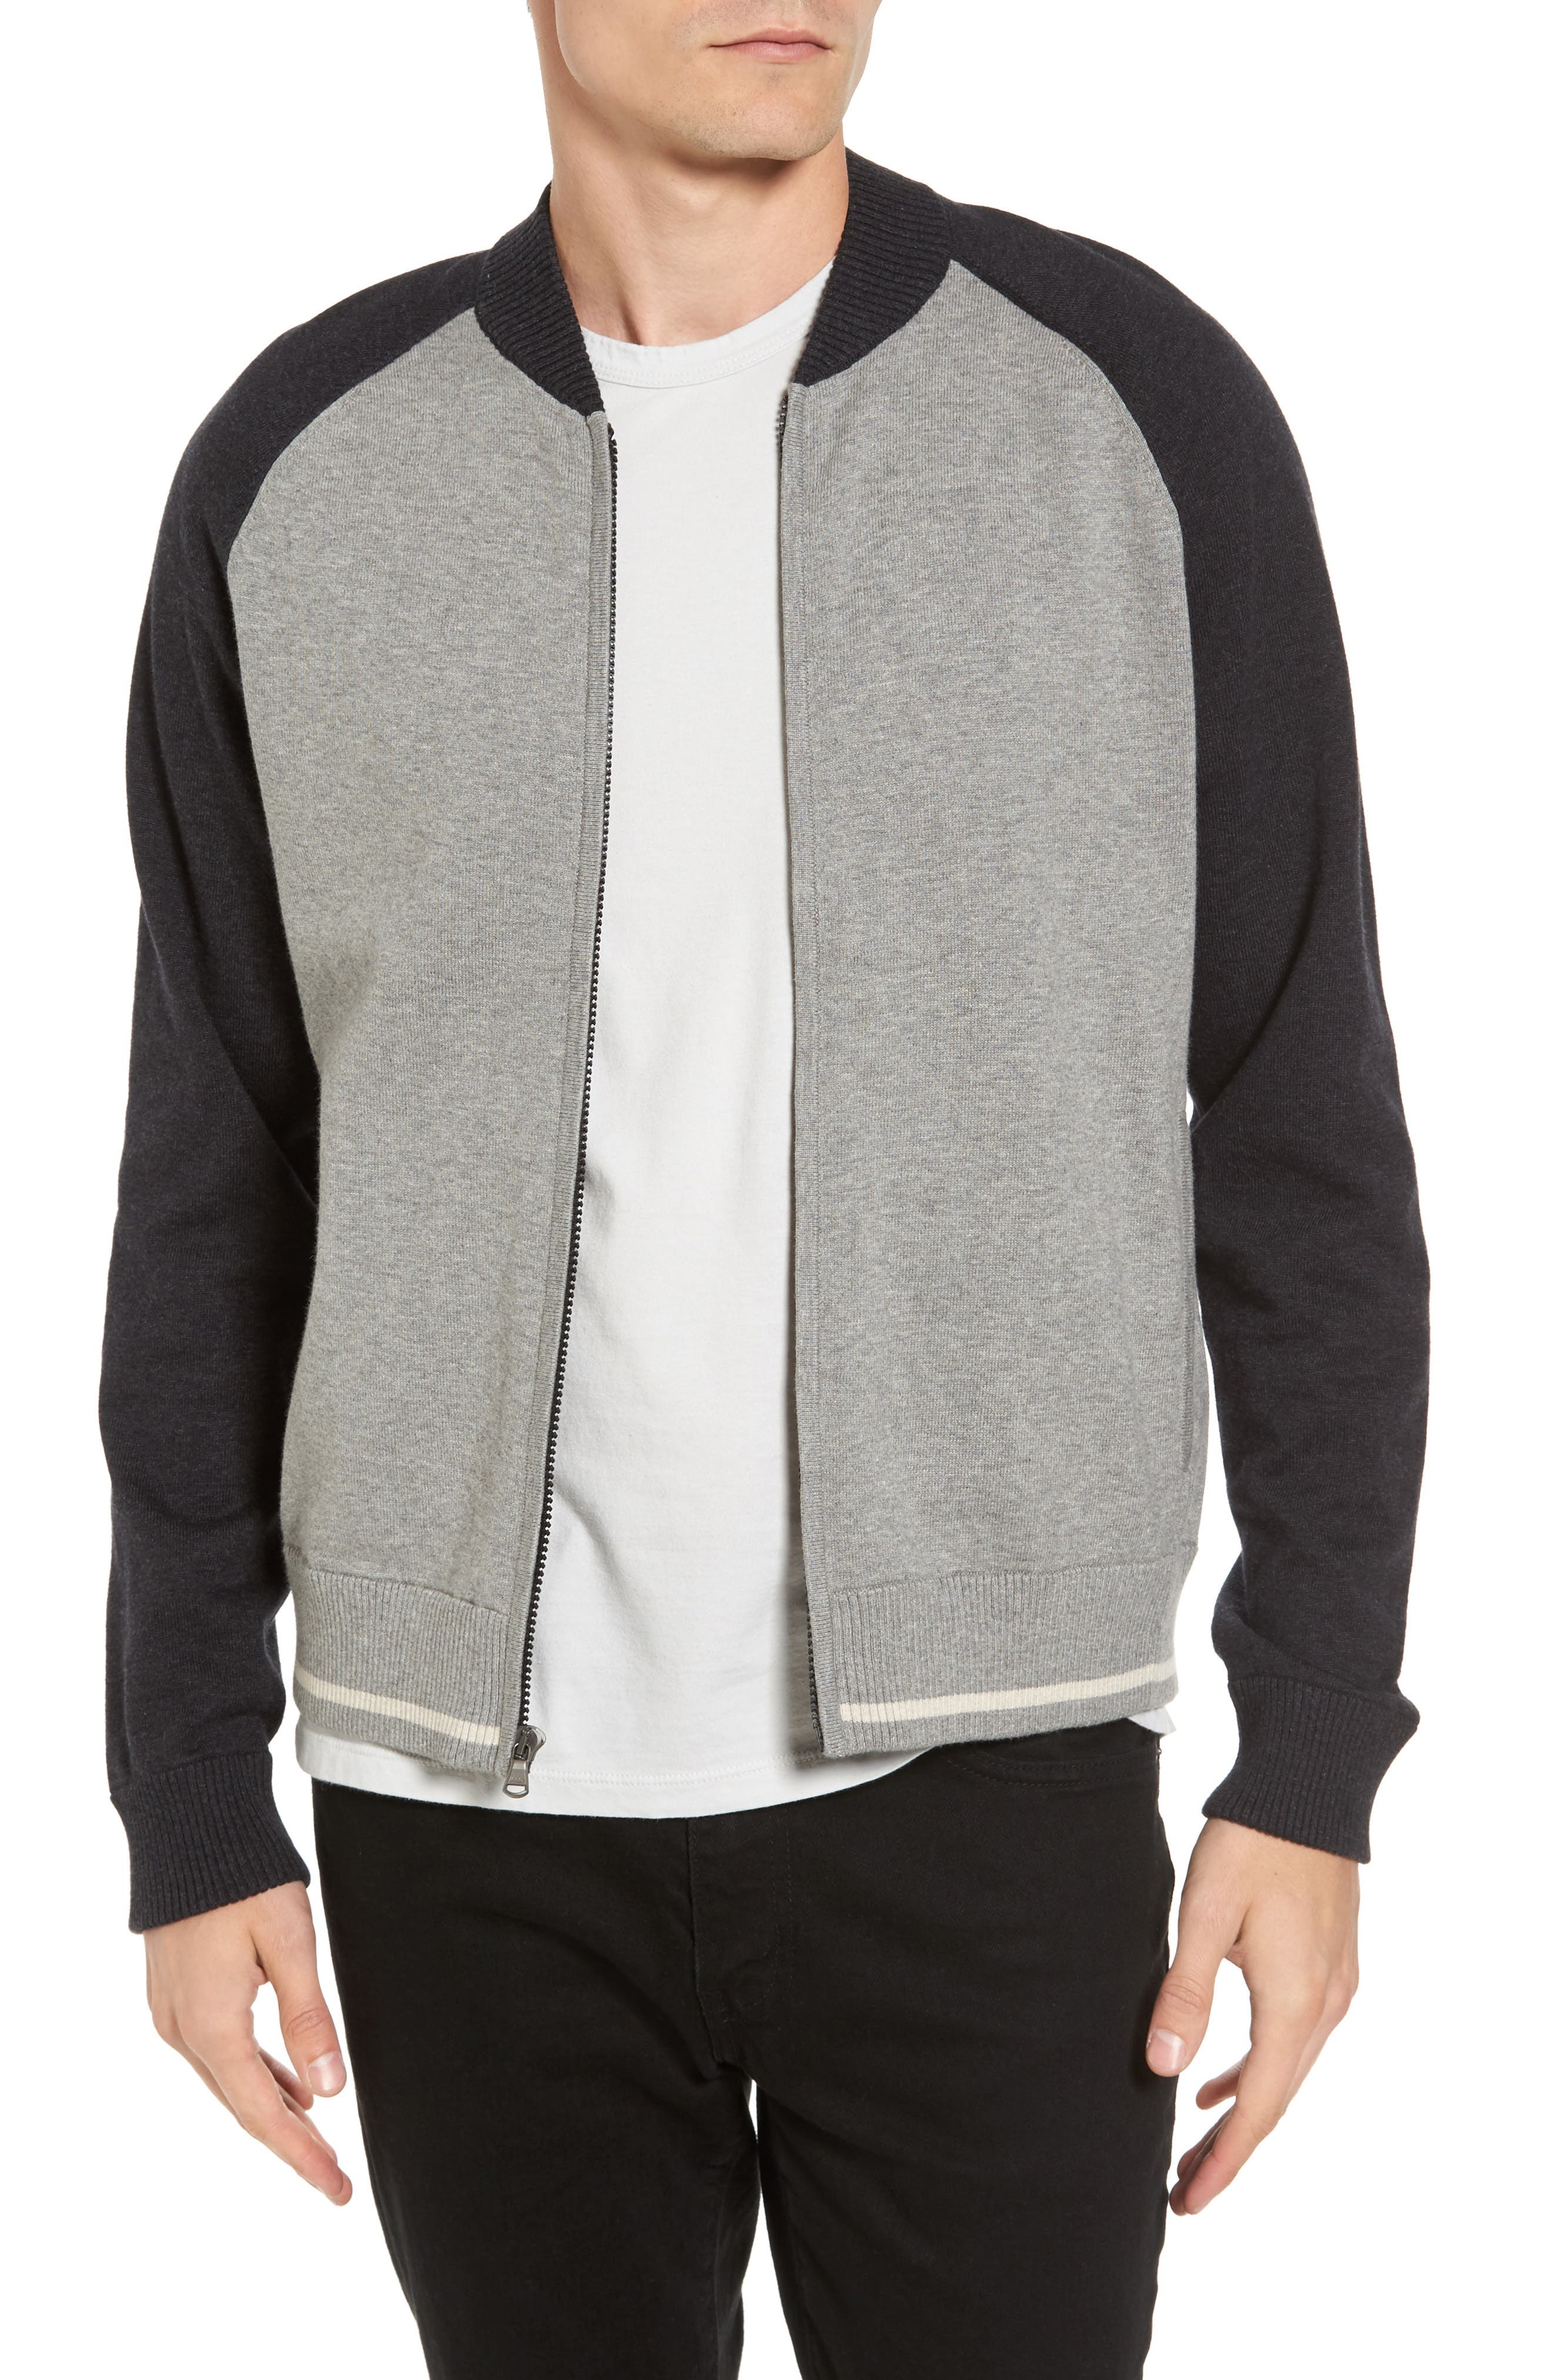 Main Image - James Perse Colorblock Knit Track Jacket